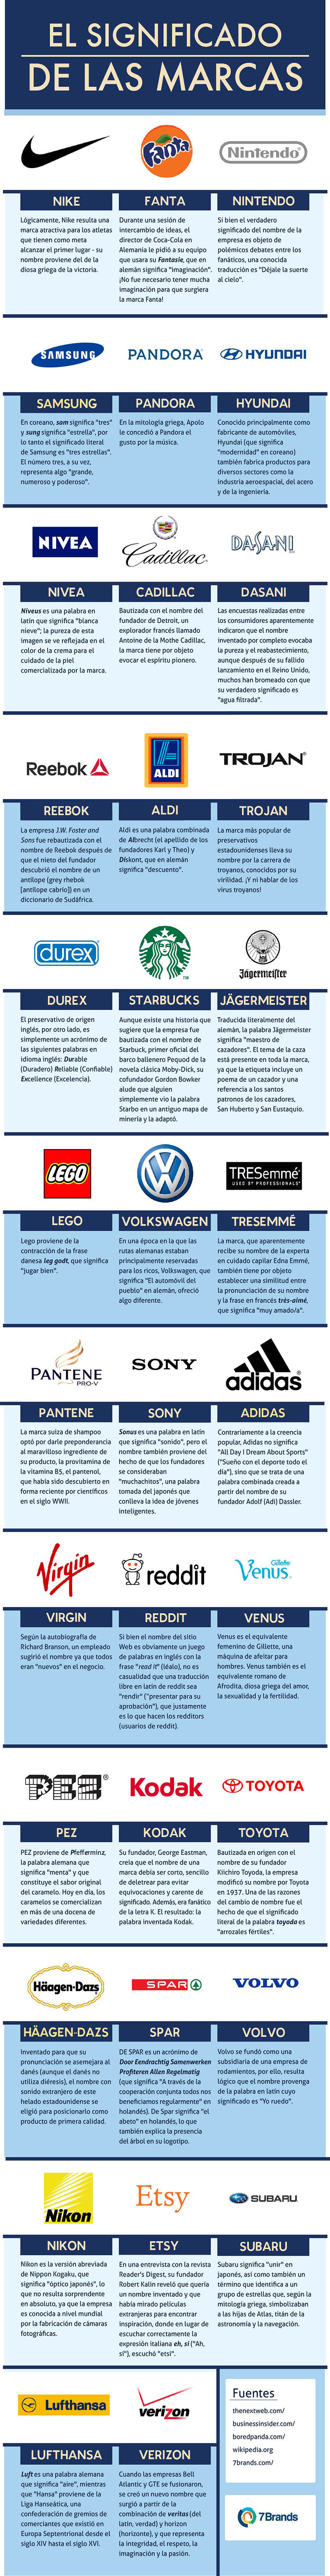 meaning of brand names_ES